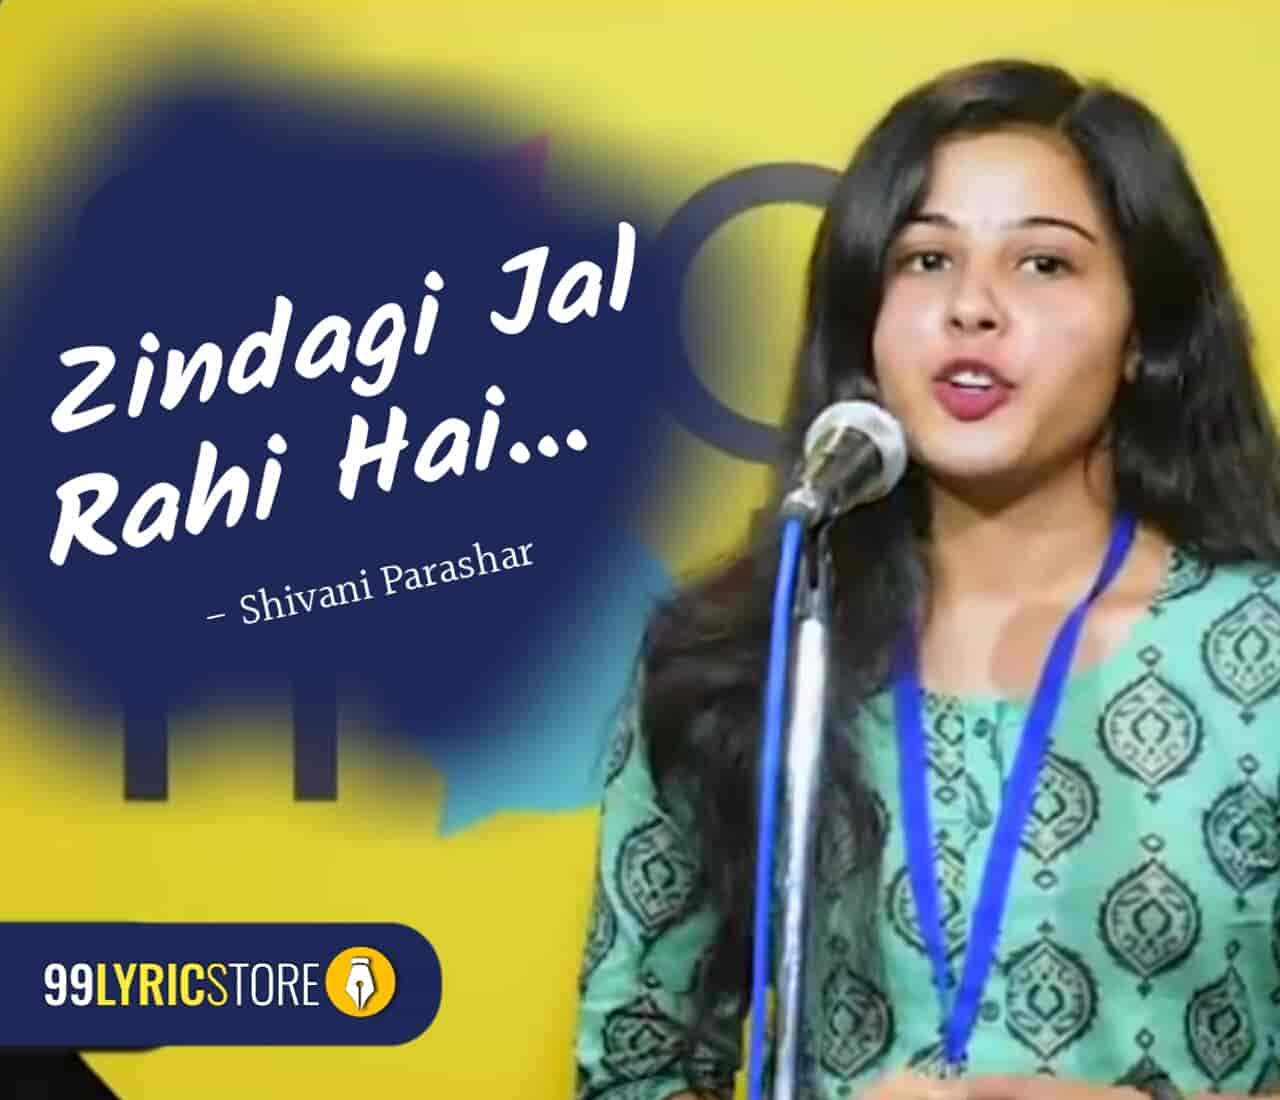 The beautiful poem 'Zindagi Jal Rahi Hai' has base on environment and written and performed by Shivani Parashar on the stage of The Social House.